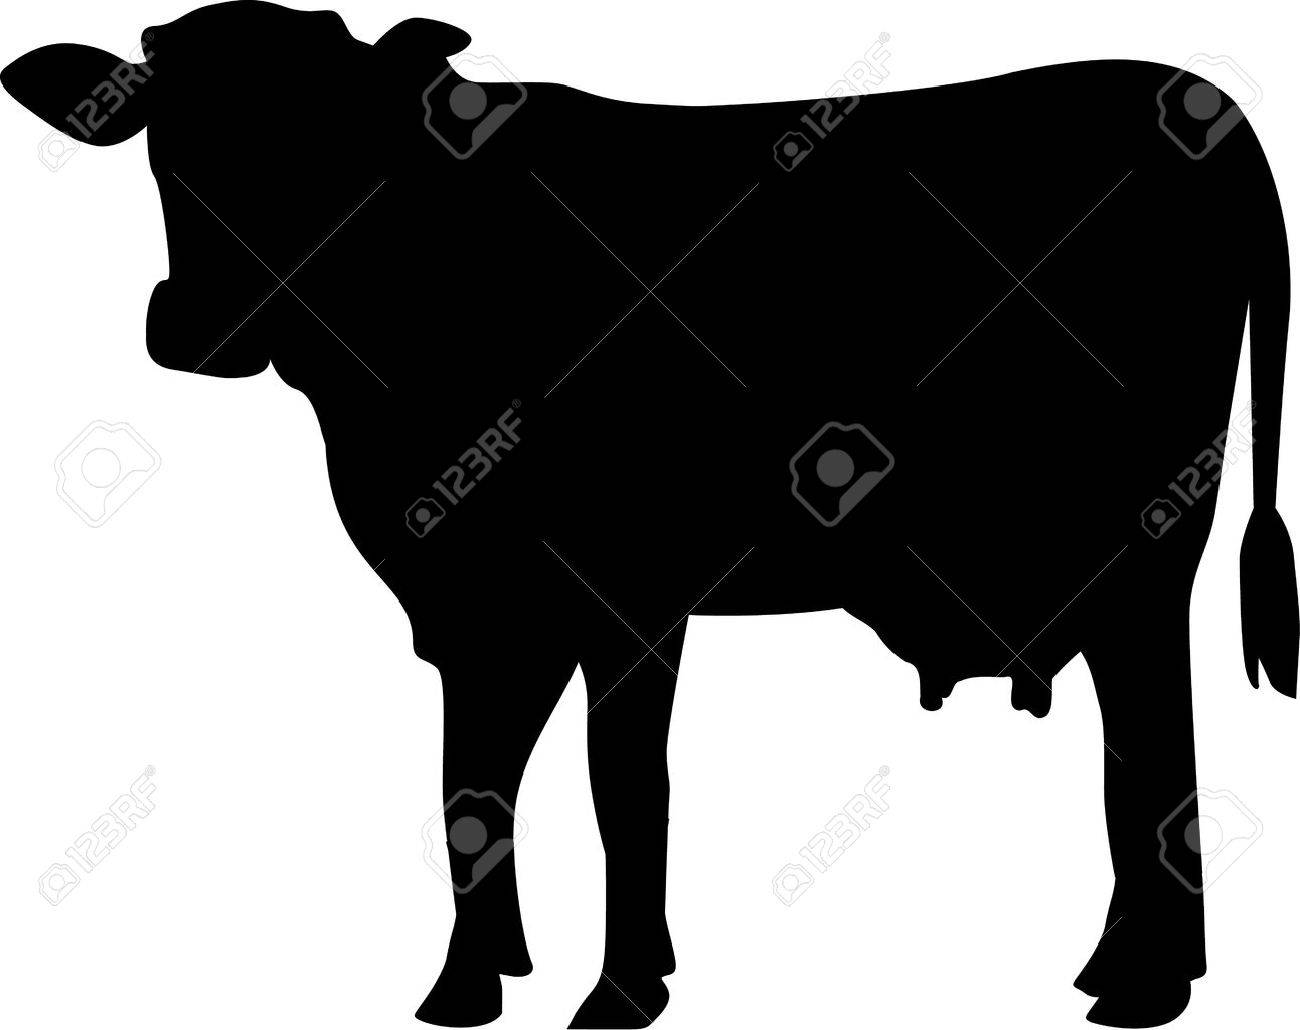 cow silhouette royalty free cliparts vectors and stock rh 123rf com cow silhouette vector free download